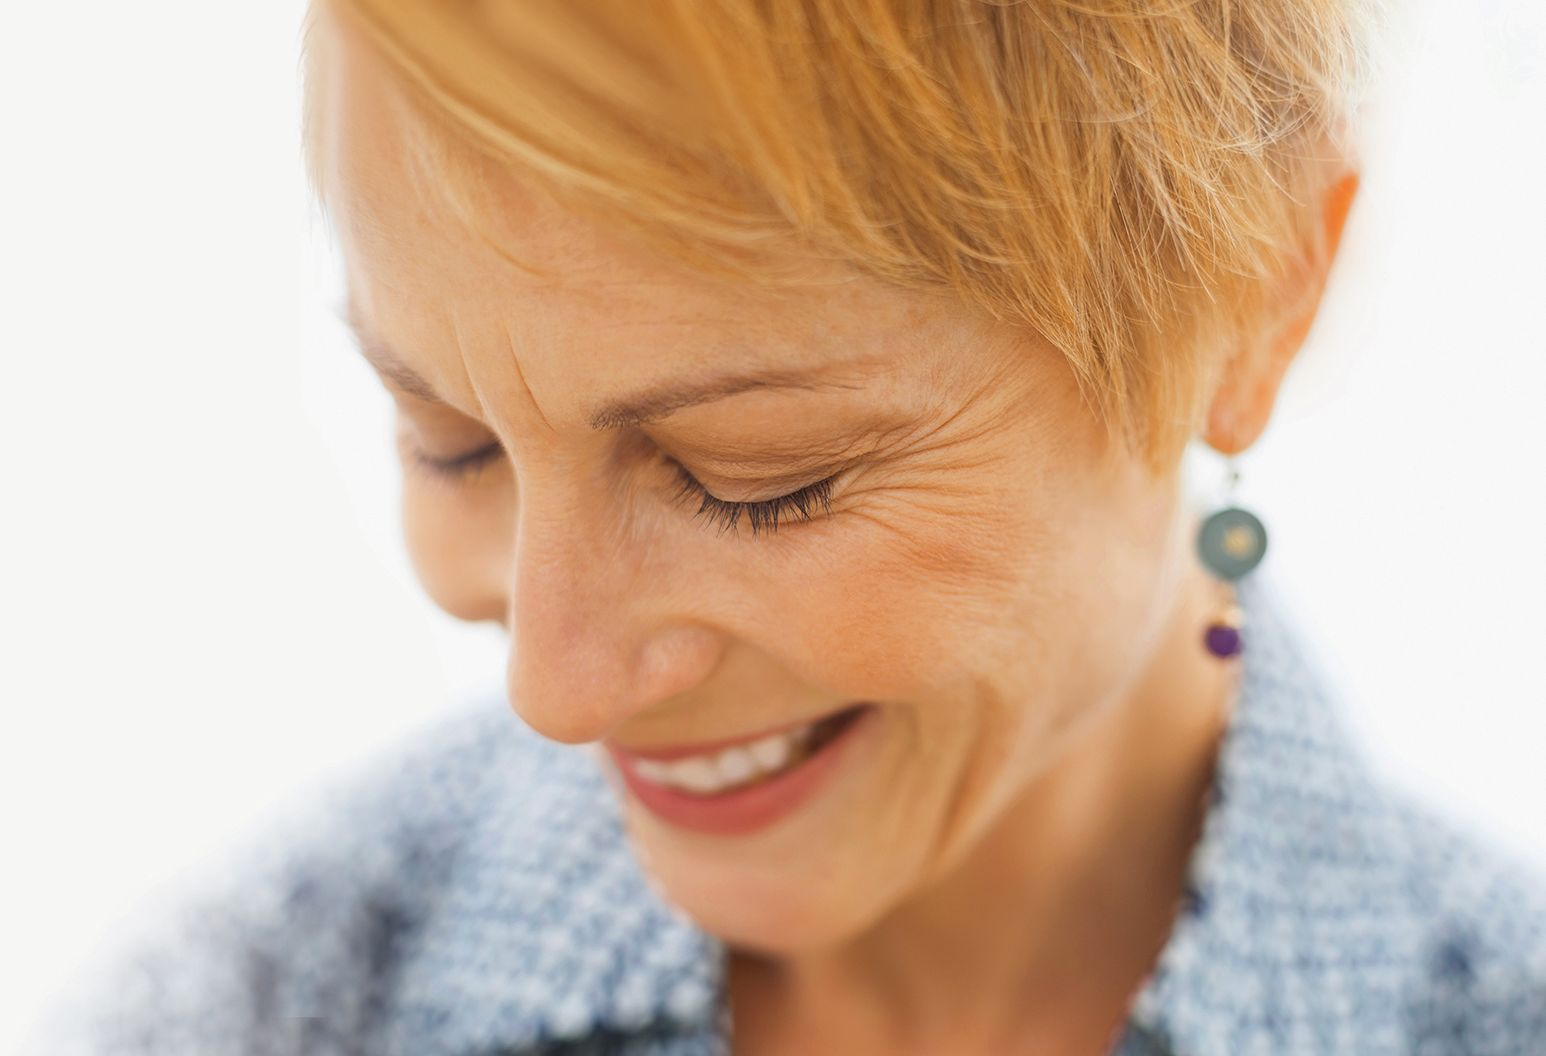 Mature woman smiling with head bent and eyes closed